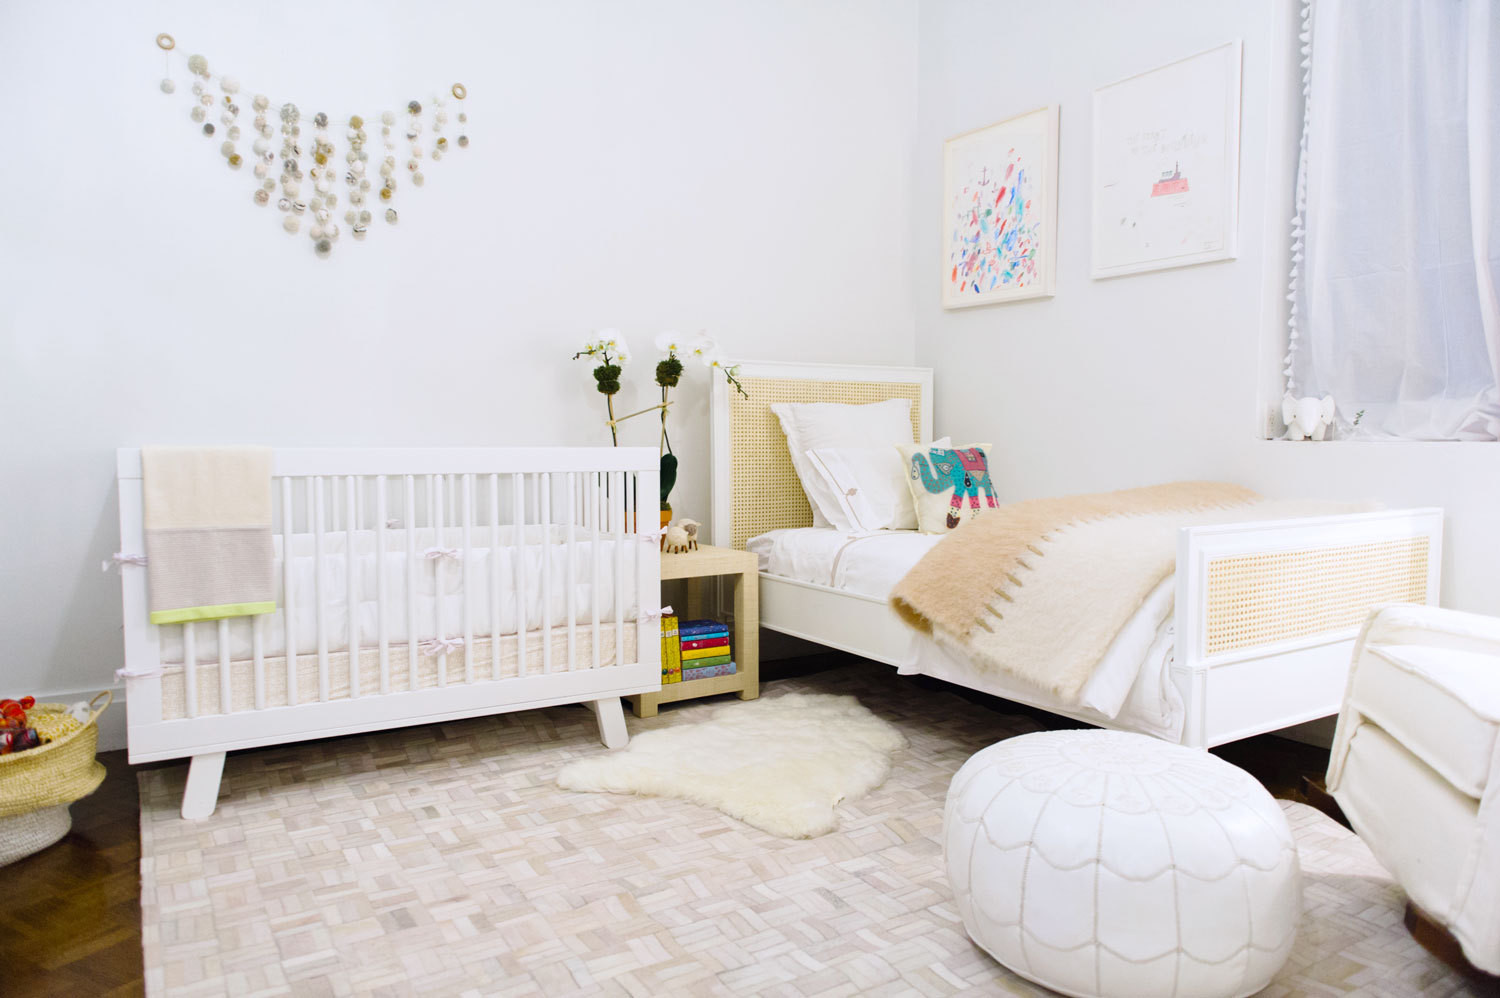 Serena And Lily A Neutral City Nursery By Serena Lily Decorating Lonny